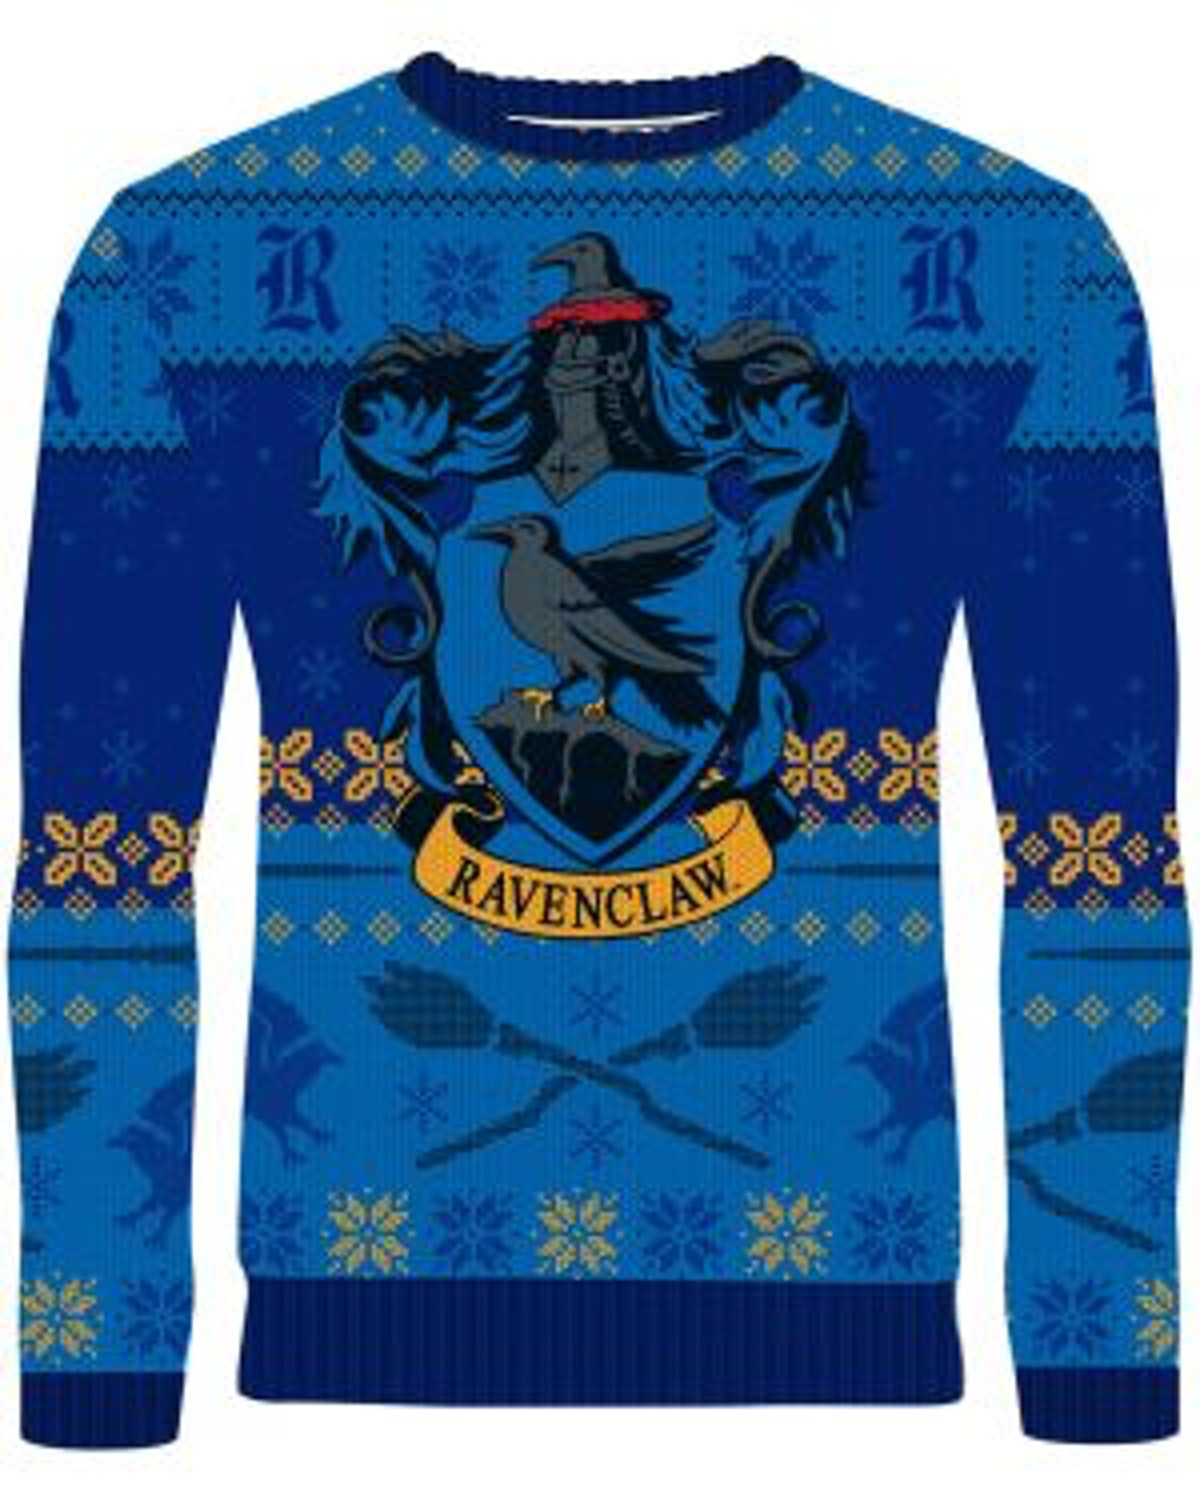 Harry Potter: Rockin' Ravenclaw Knitted Christmas Sweater